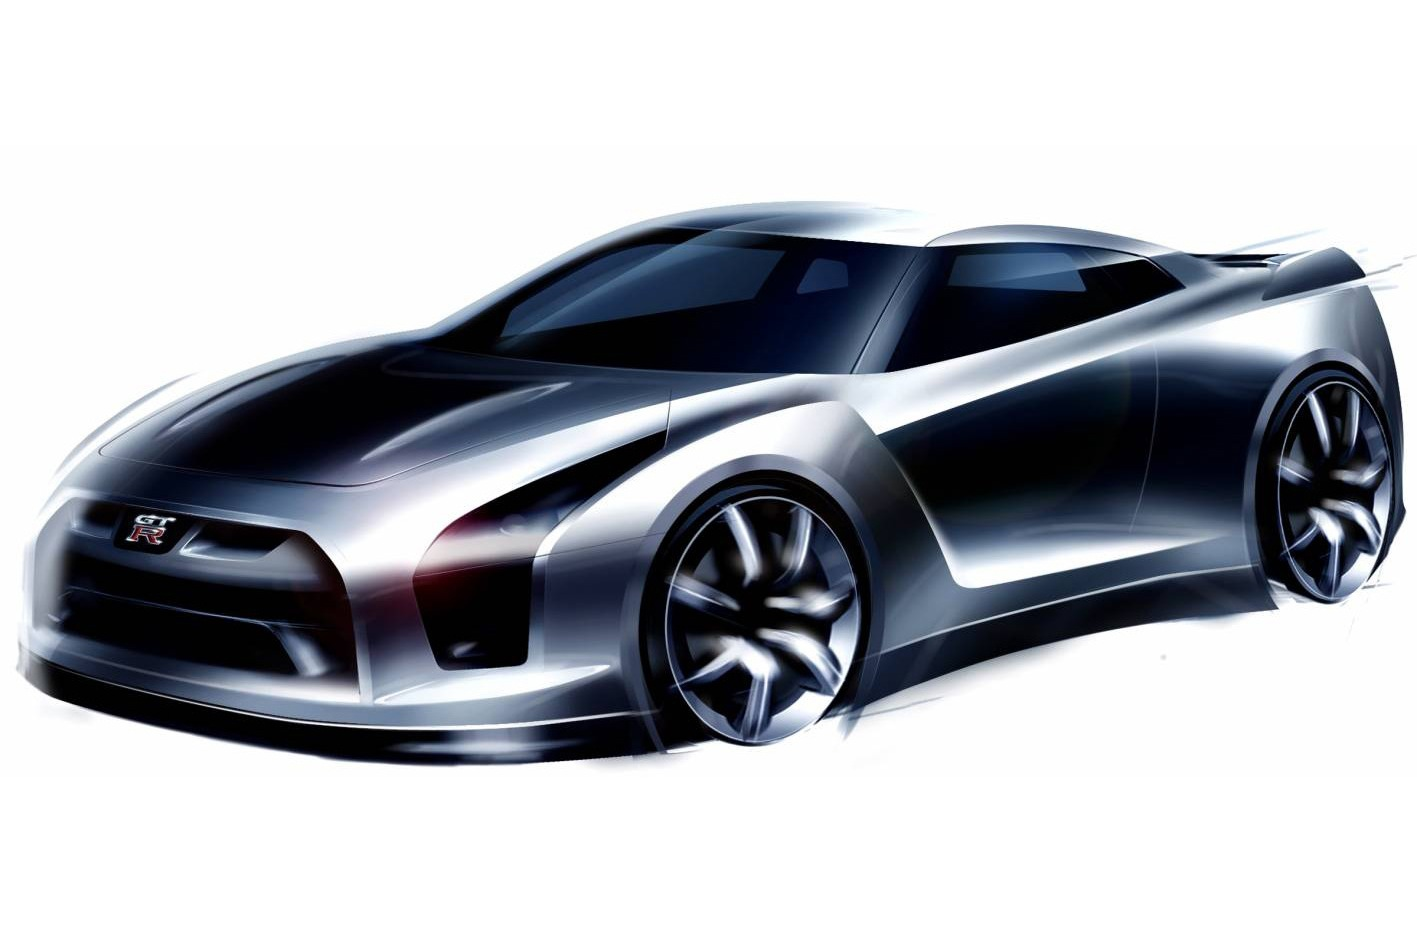 All-new Nissan GT-R 'R36' set for 2016 - report ...